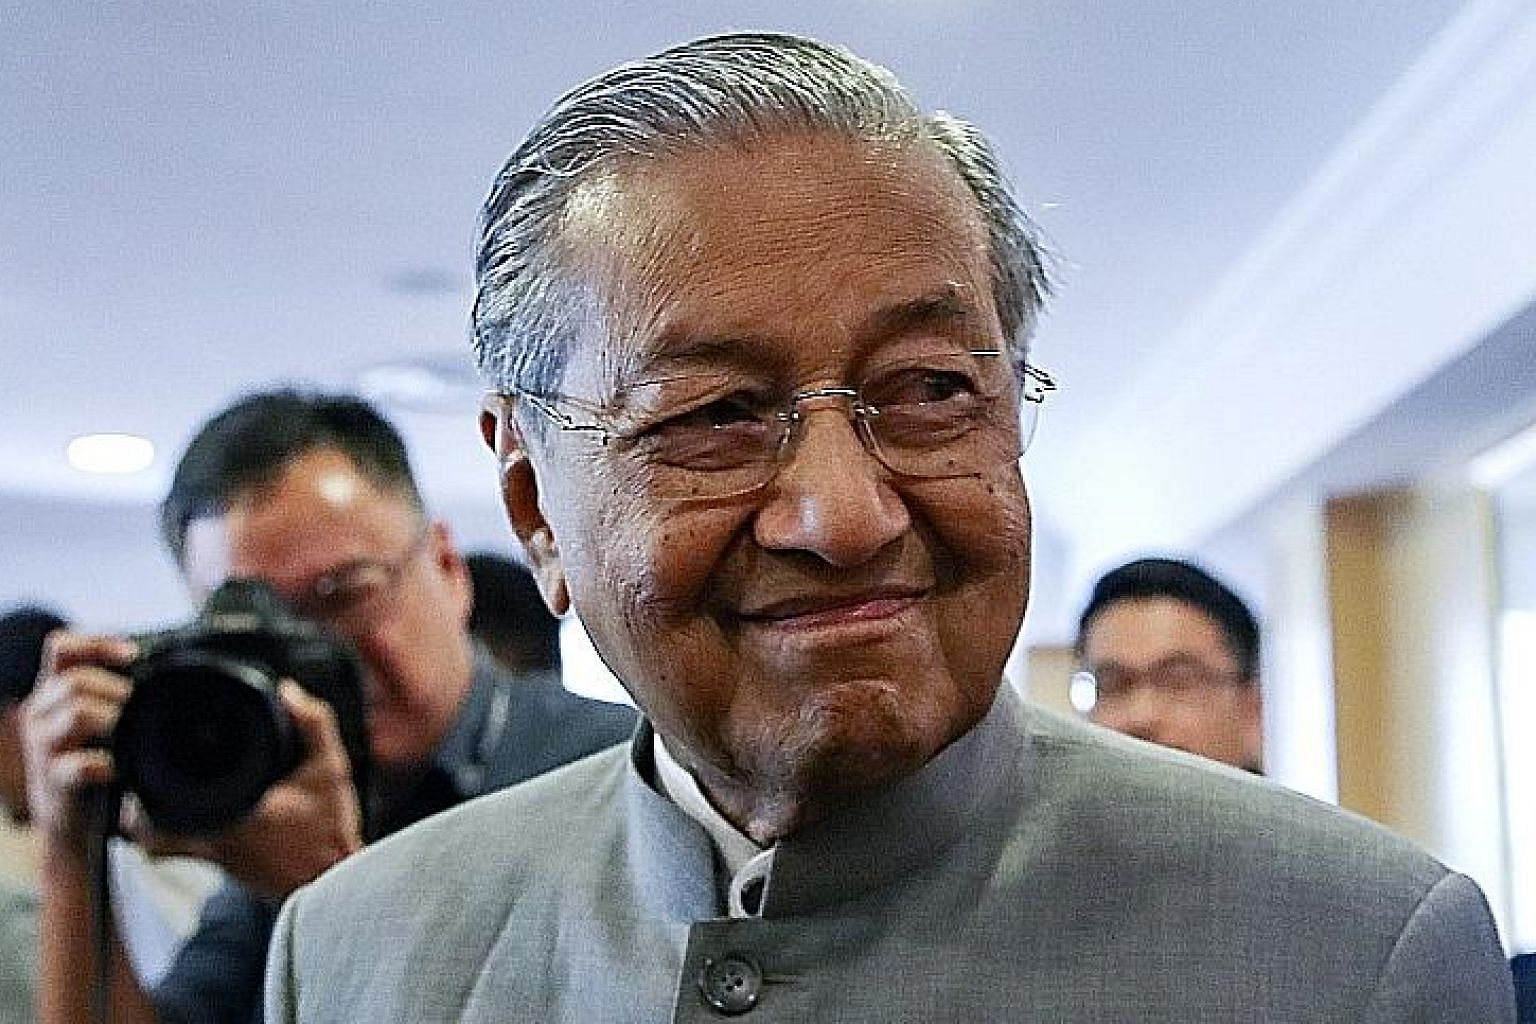 Malaysian Prime Minister Mahathir Mohamad says today's technology is not easy for old people like him.